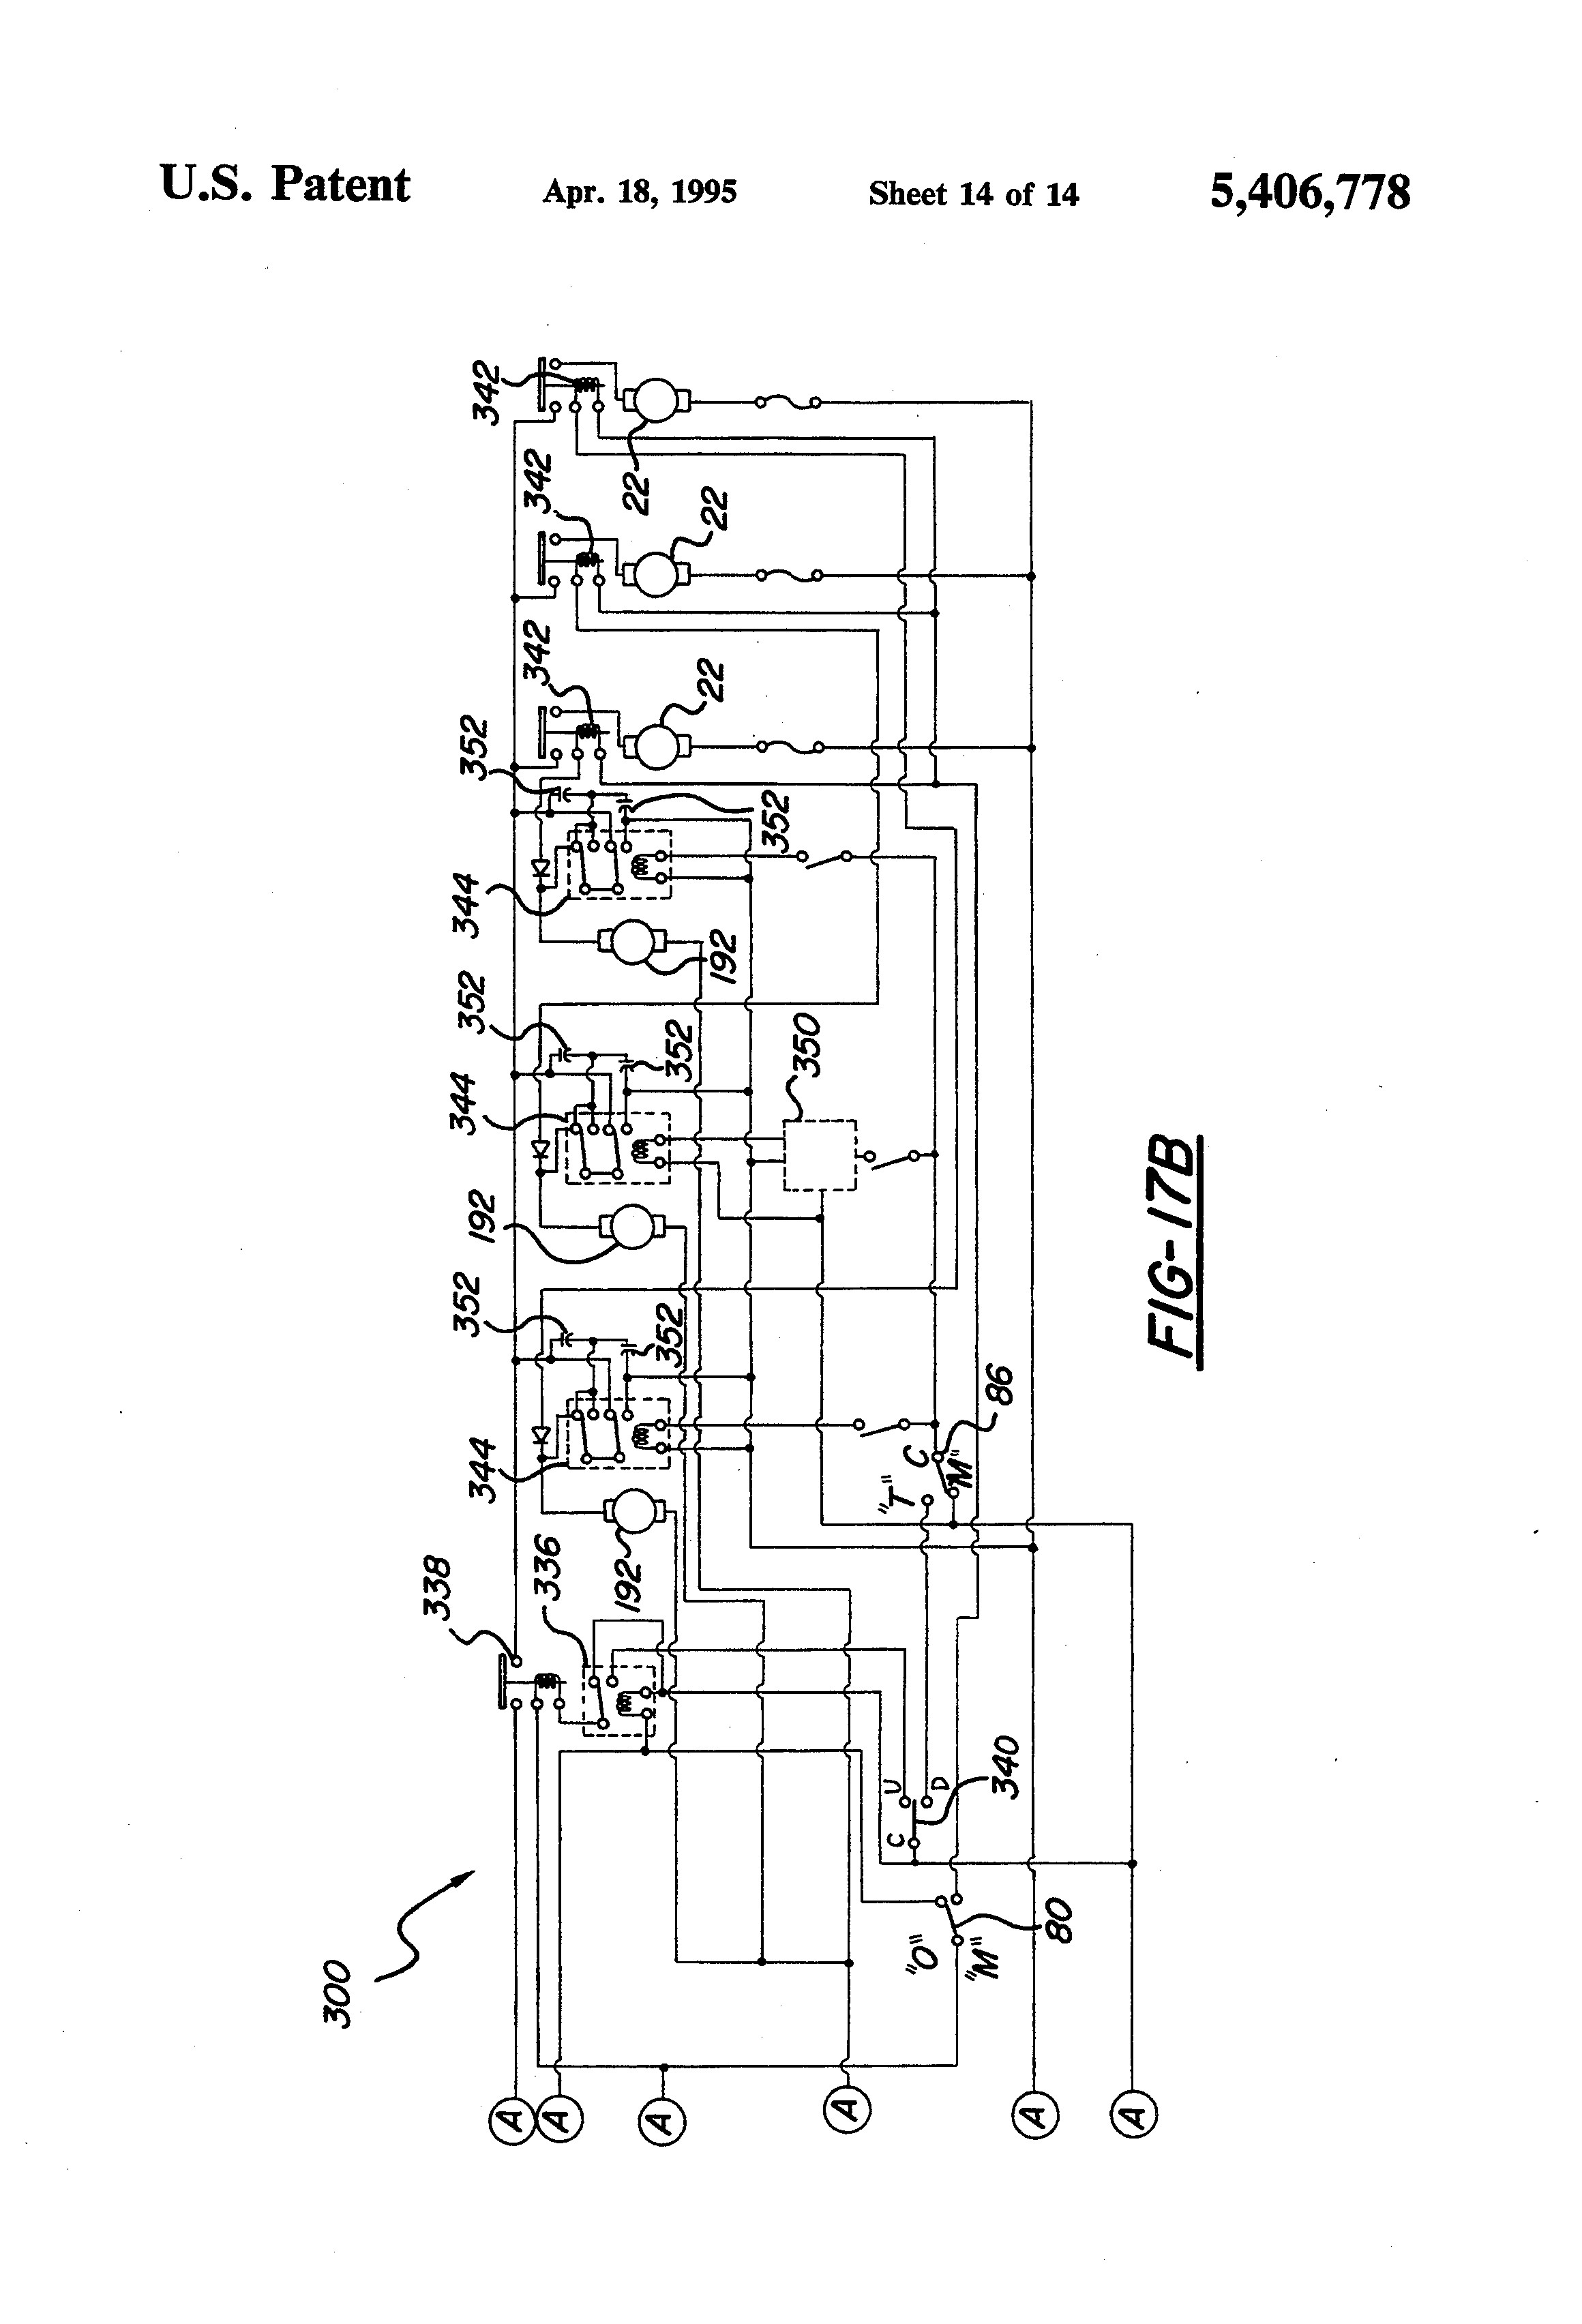 Dixie Chopper Wiring Diagram - Auto Electrical Wiring Diagram on